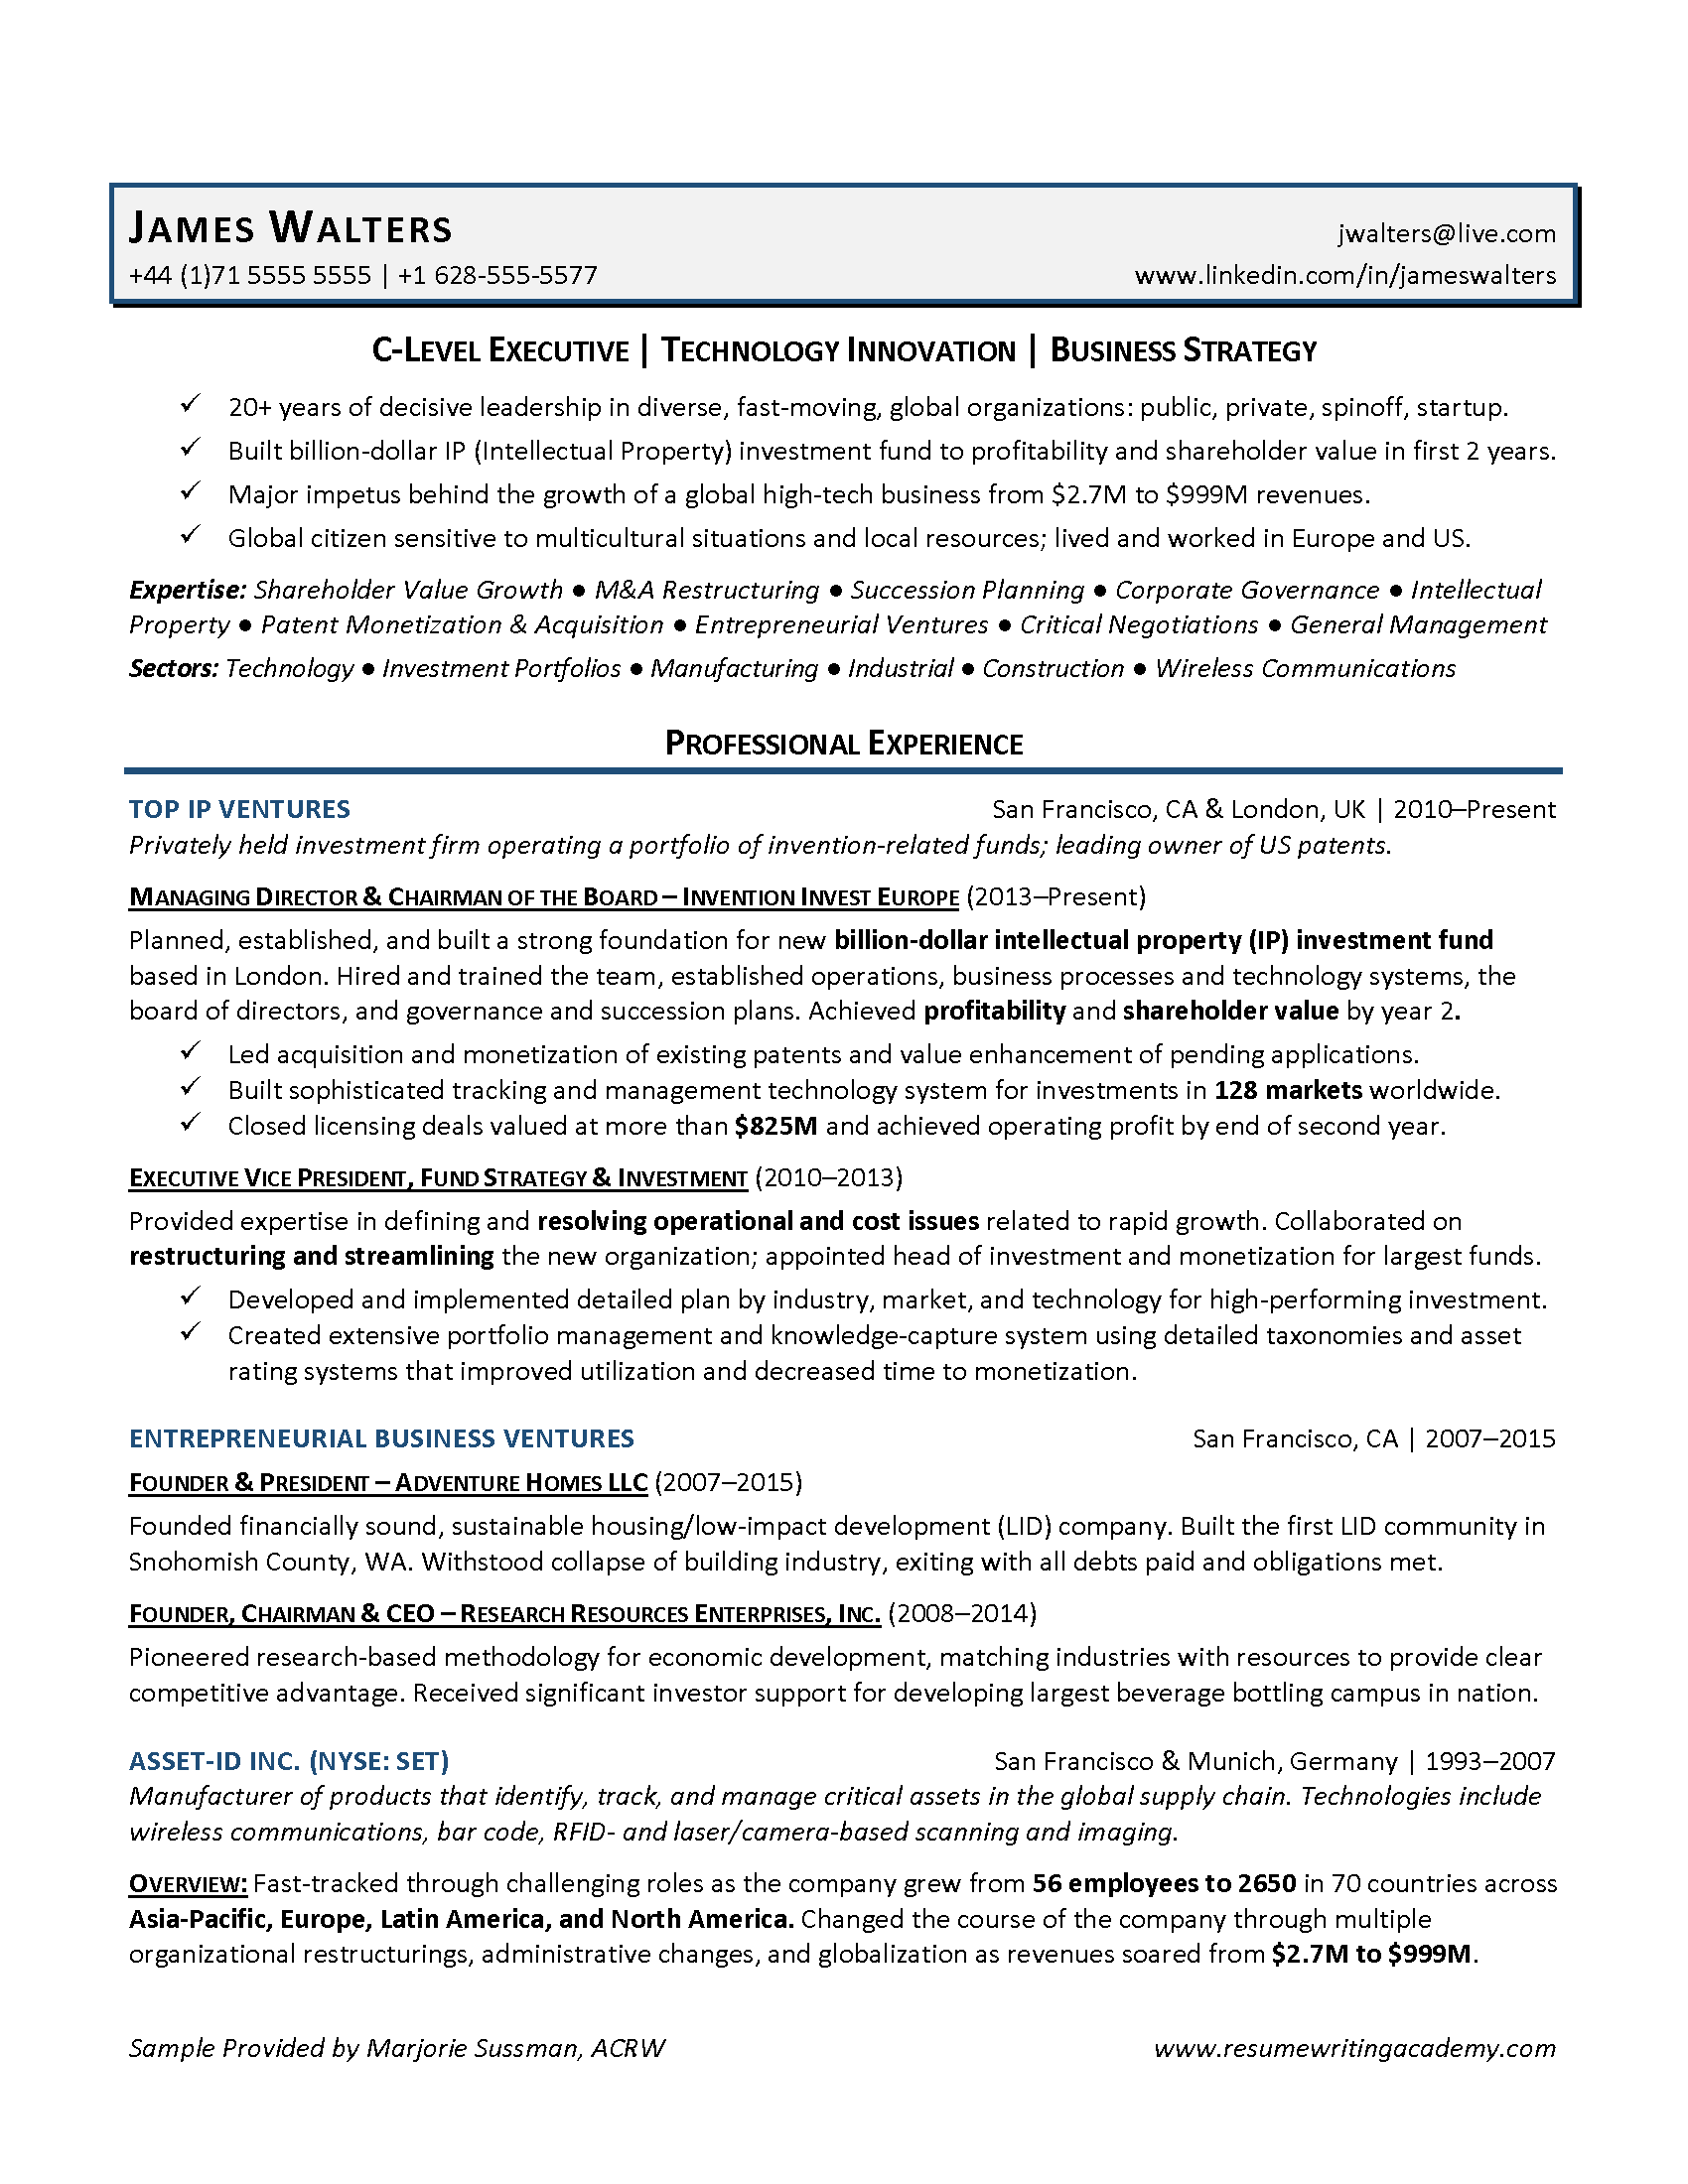 Resume Writing Academy - 3 Strategies for Executive Resumes